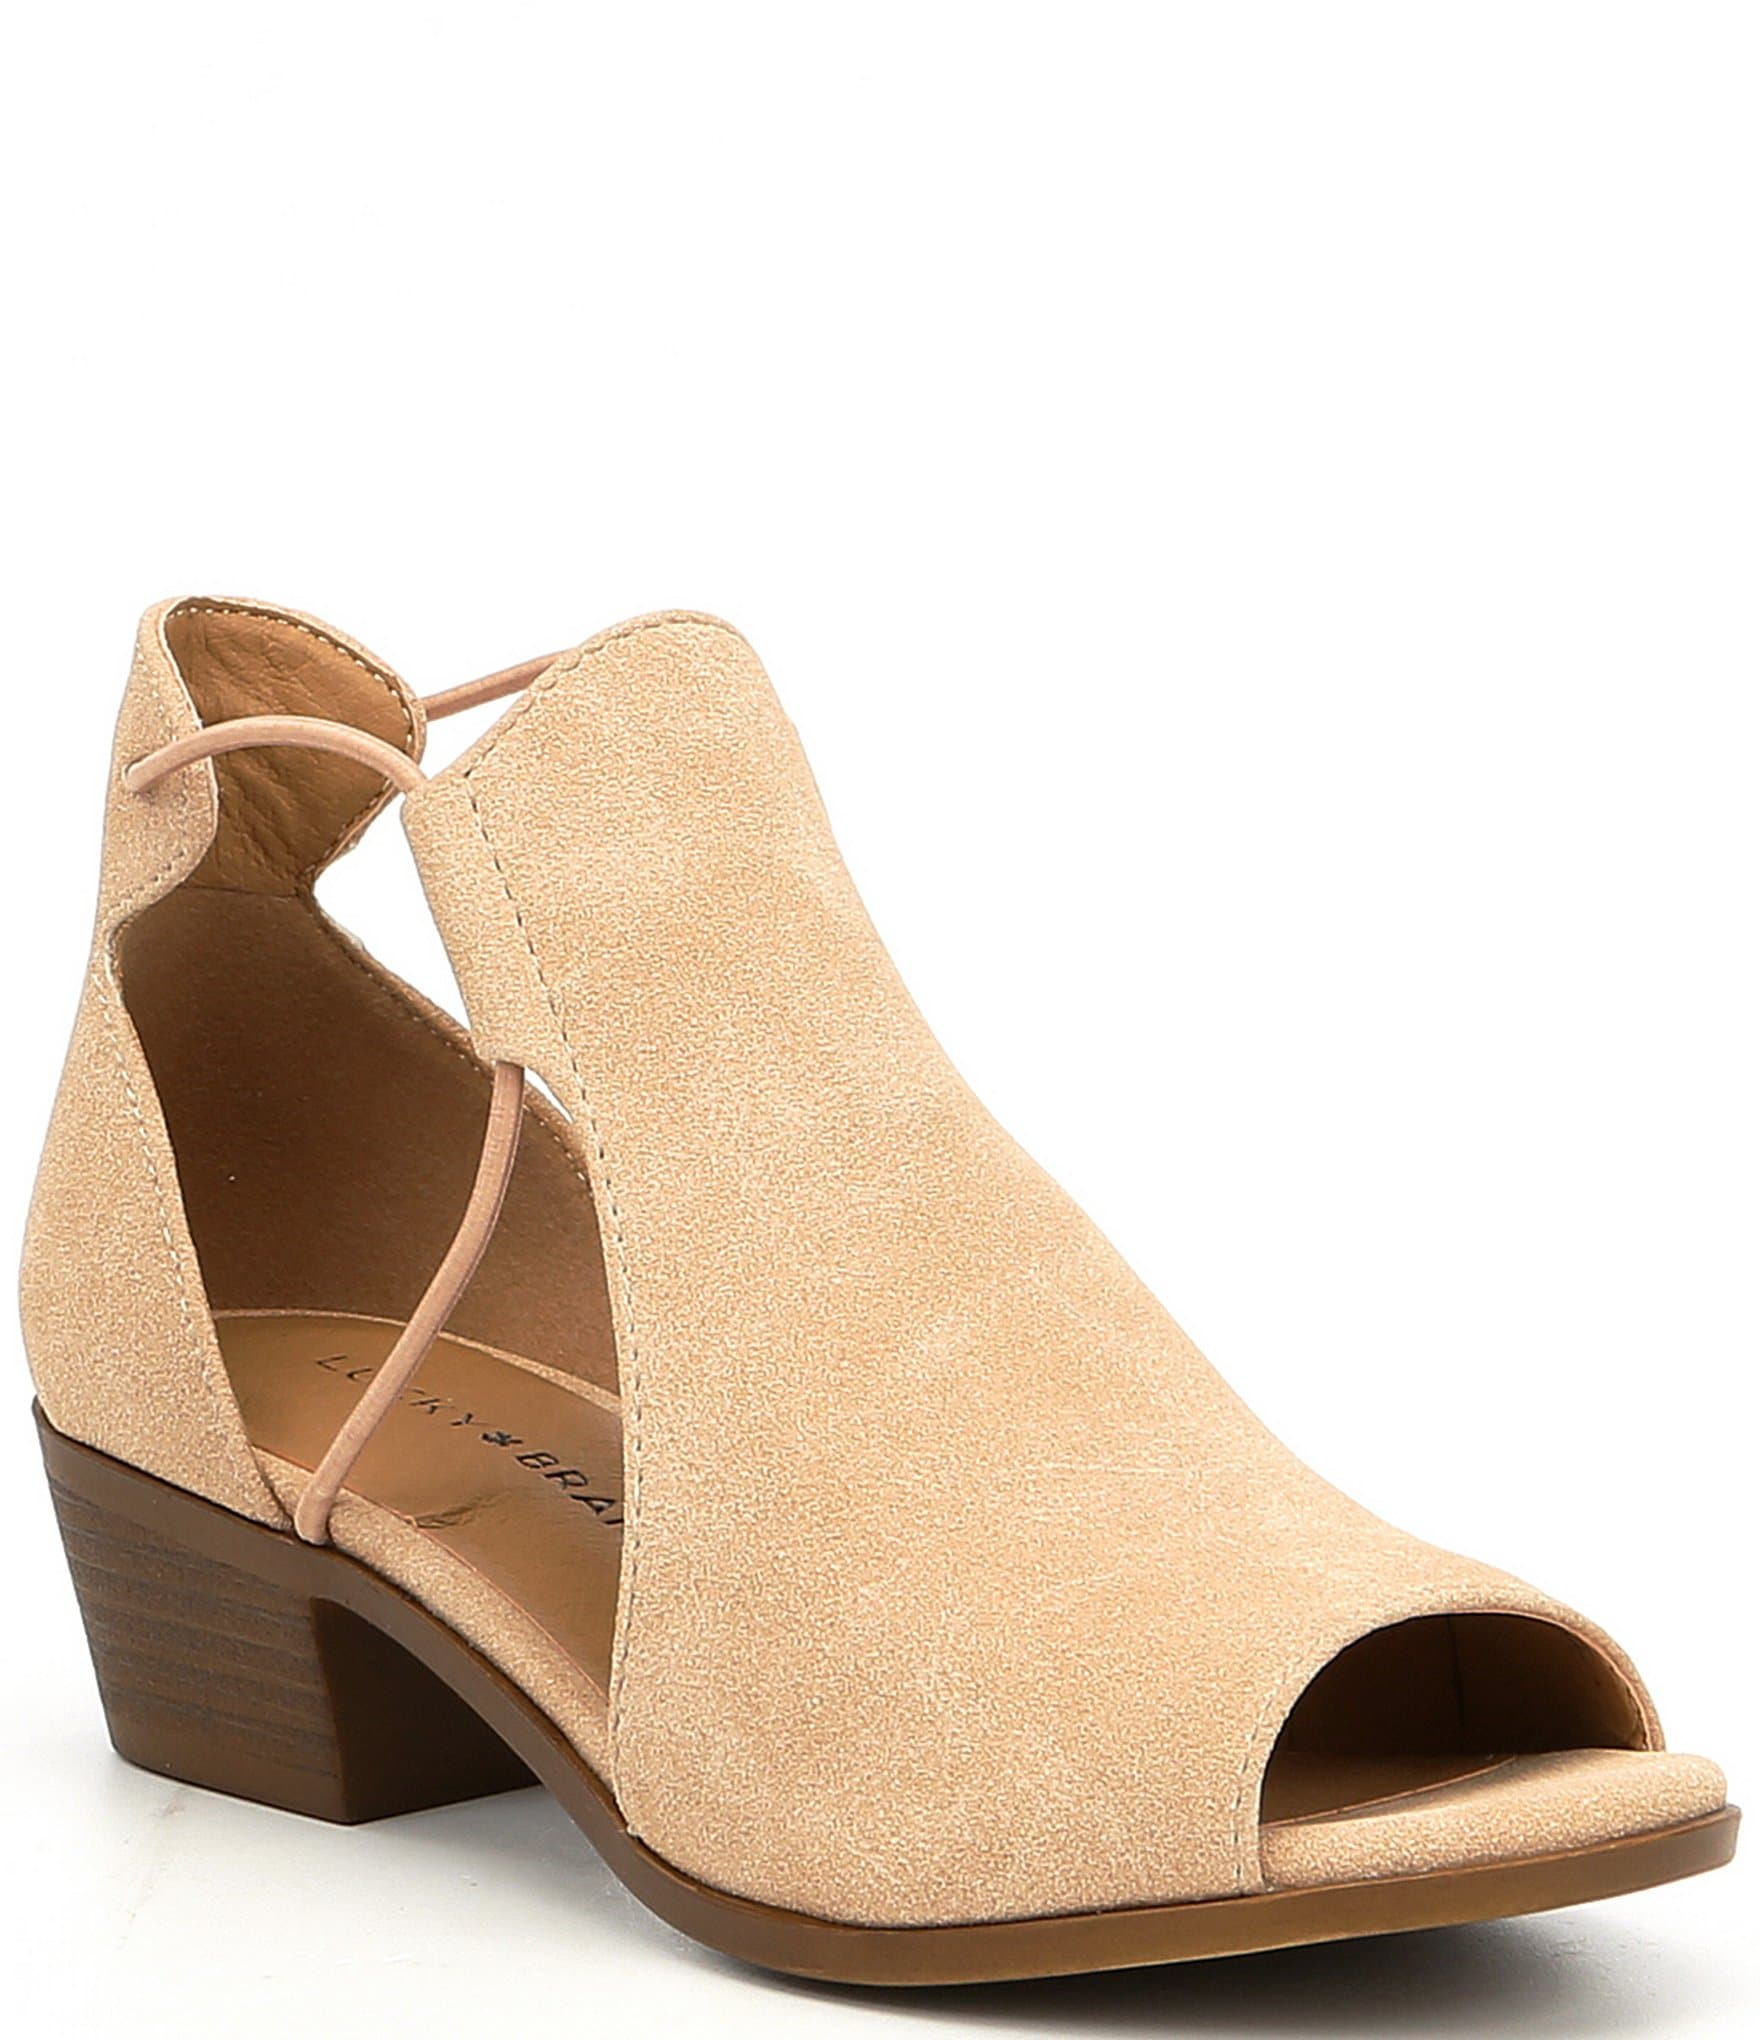 989c7818705 lucky brand bootie  Shoes for Women